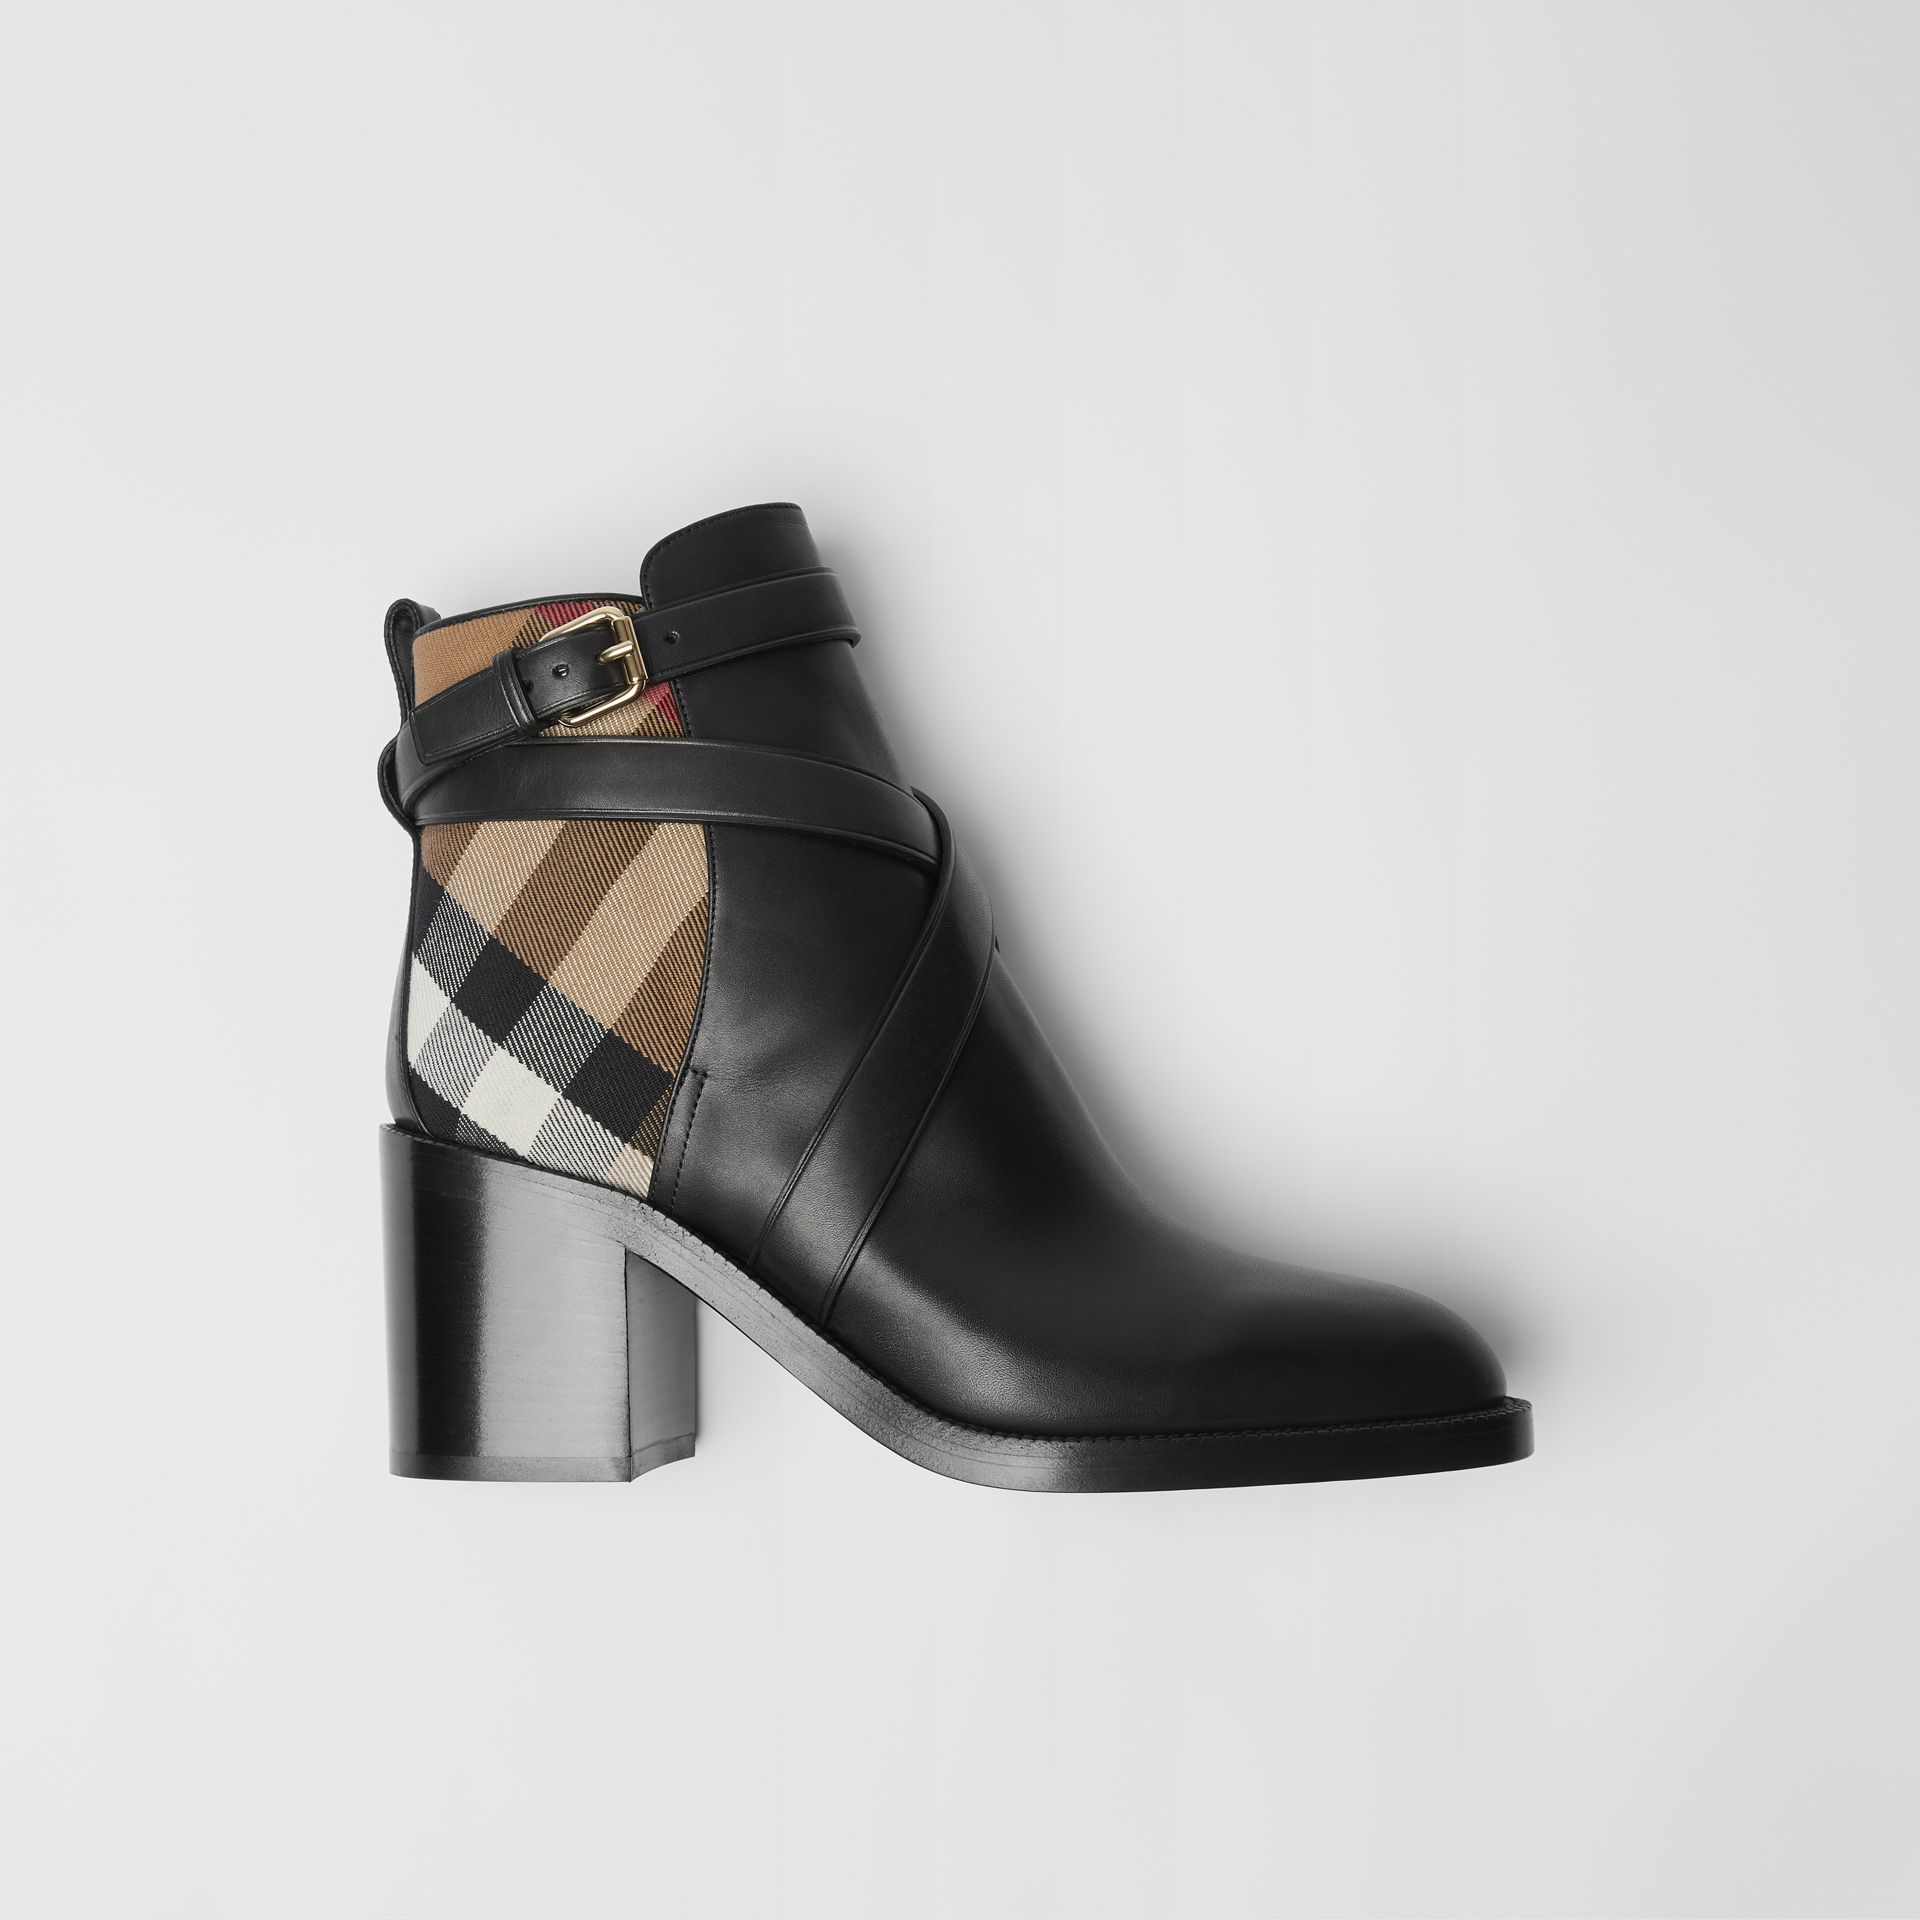 Bottines en cuir et coton House check (Noir) - Femme | Burberry - photo de la galerie 0